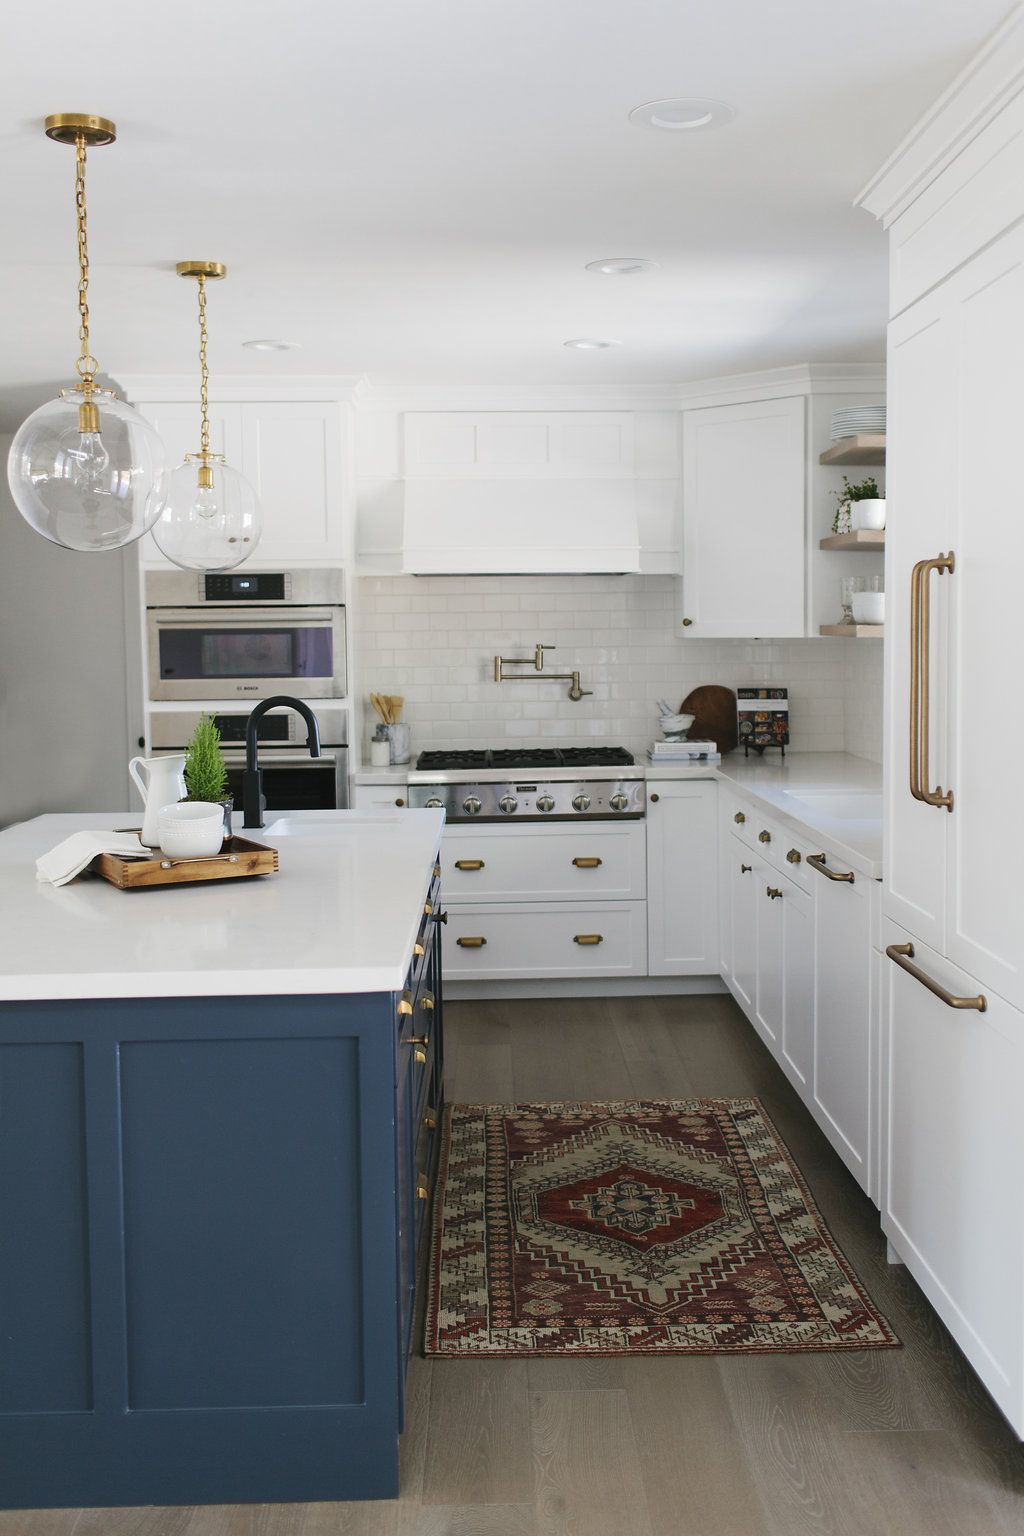 Kitchen Renovations Are Probably One Of The Most Complicated Design Projects That Homeowners Often Tack Gorgeous White Kitchen Home Kitchens Kitchen Renovation